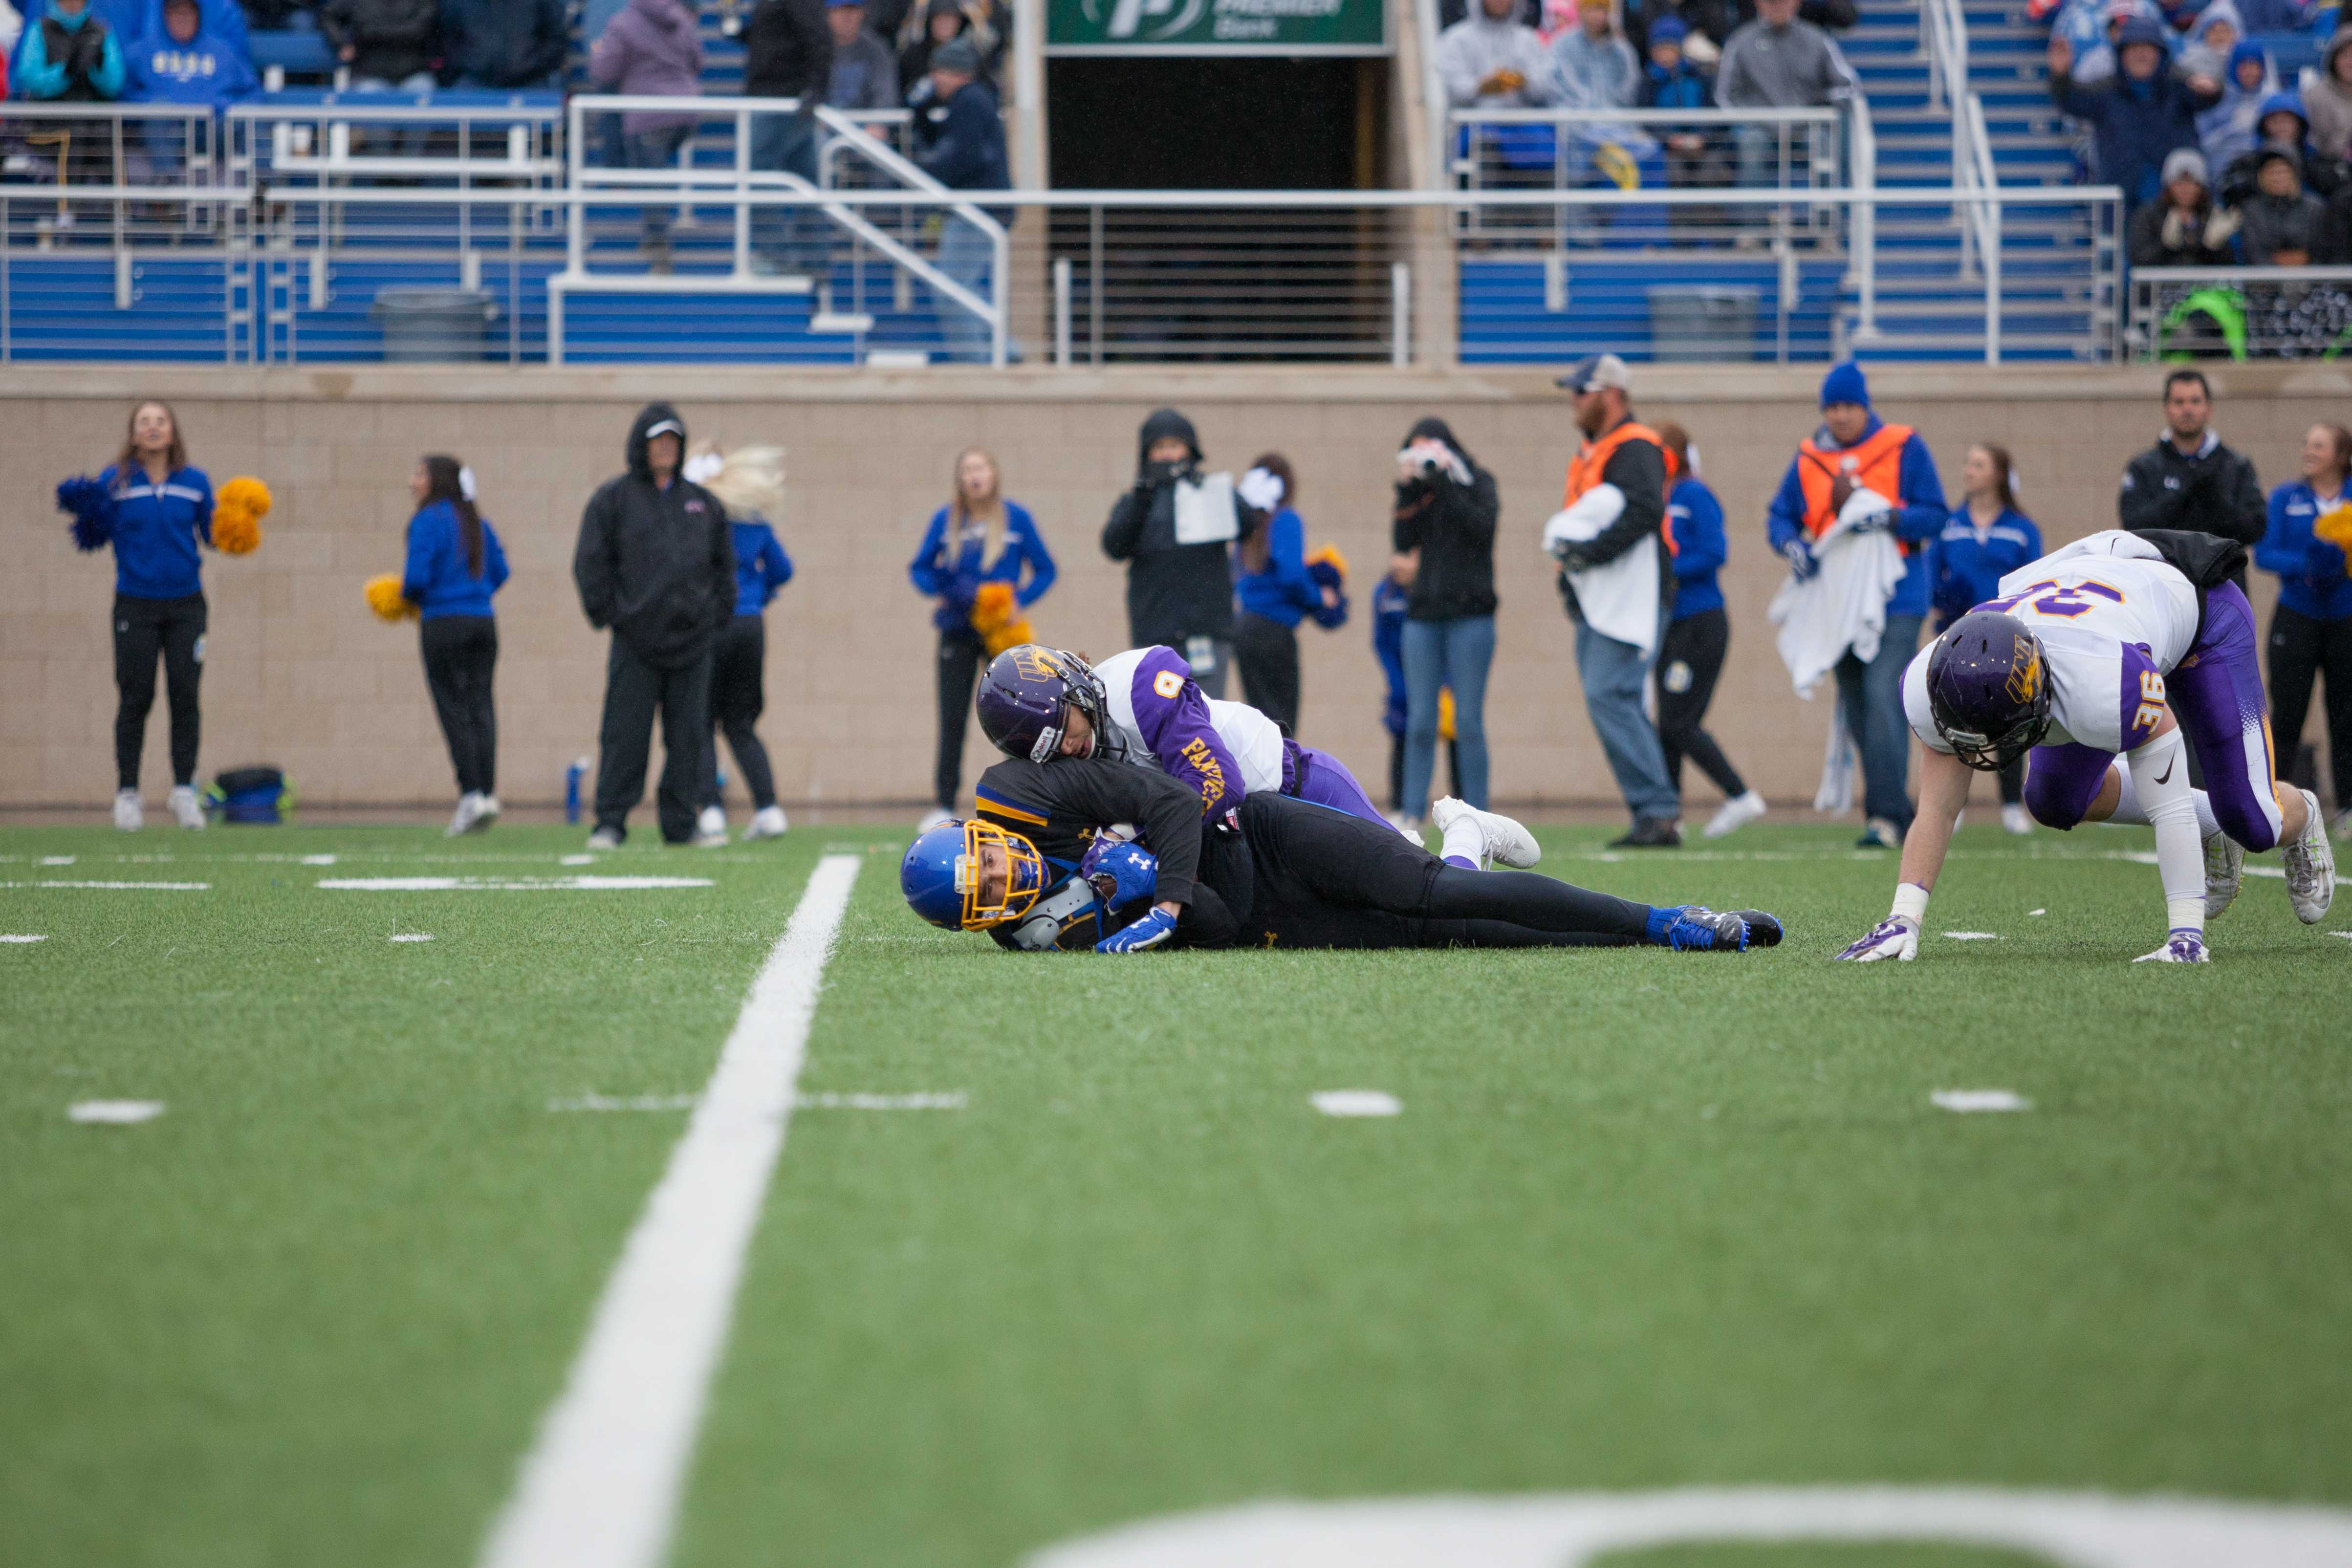 THIEN NGUYEN  Jake Wieneke is brought down after catching a 19-yard pass for a first down Oct. 14 during the Hobo Day game. The Jacks fell to the Panthers 38-18.